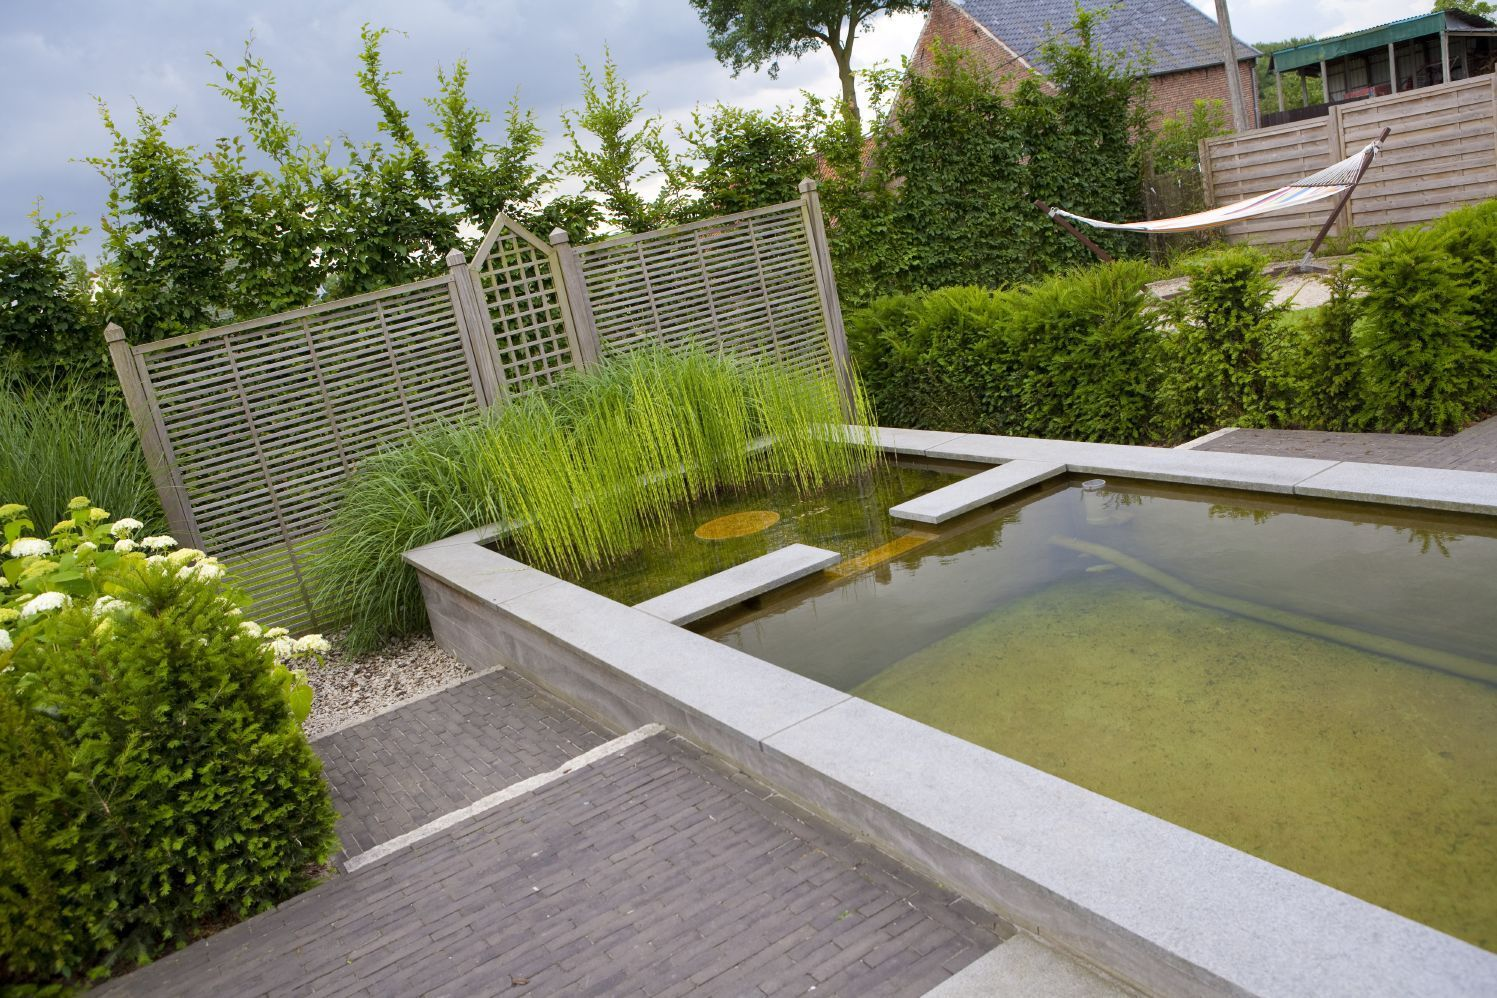 Extreem waterpartij in tuin rv82 belbin info for Moderne waterpartijen tuin